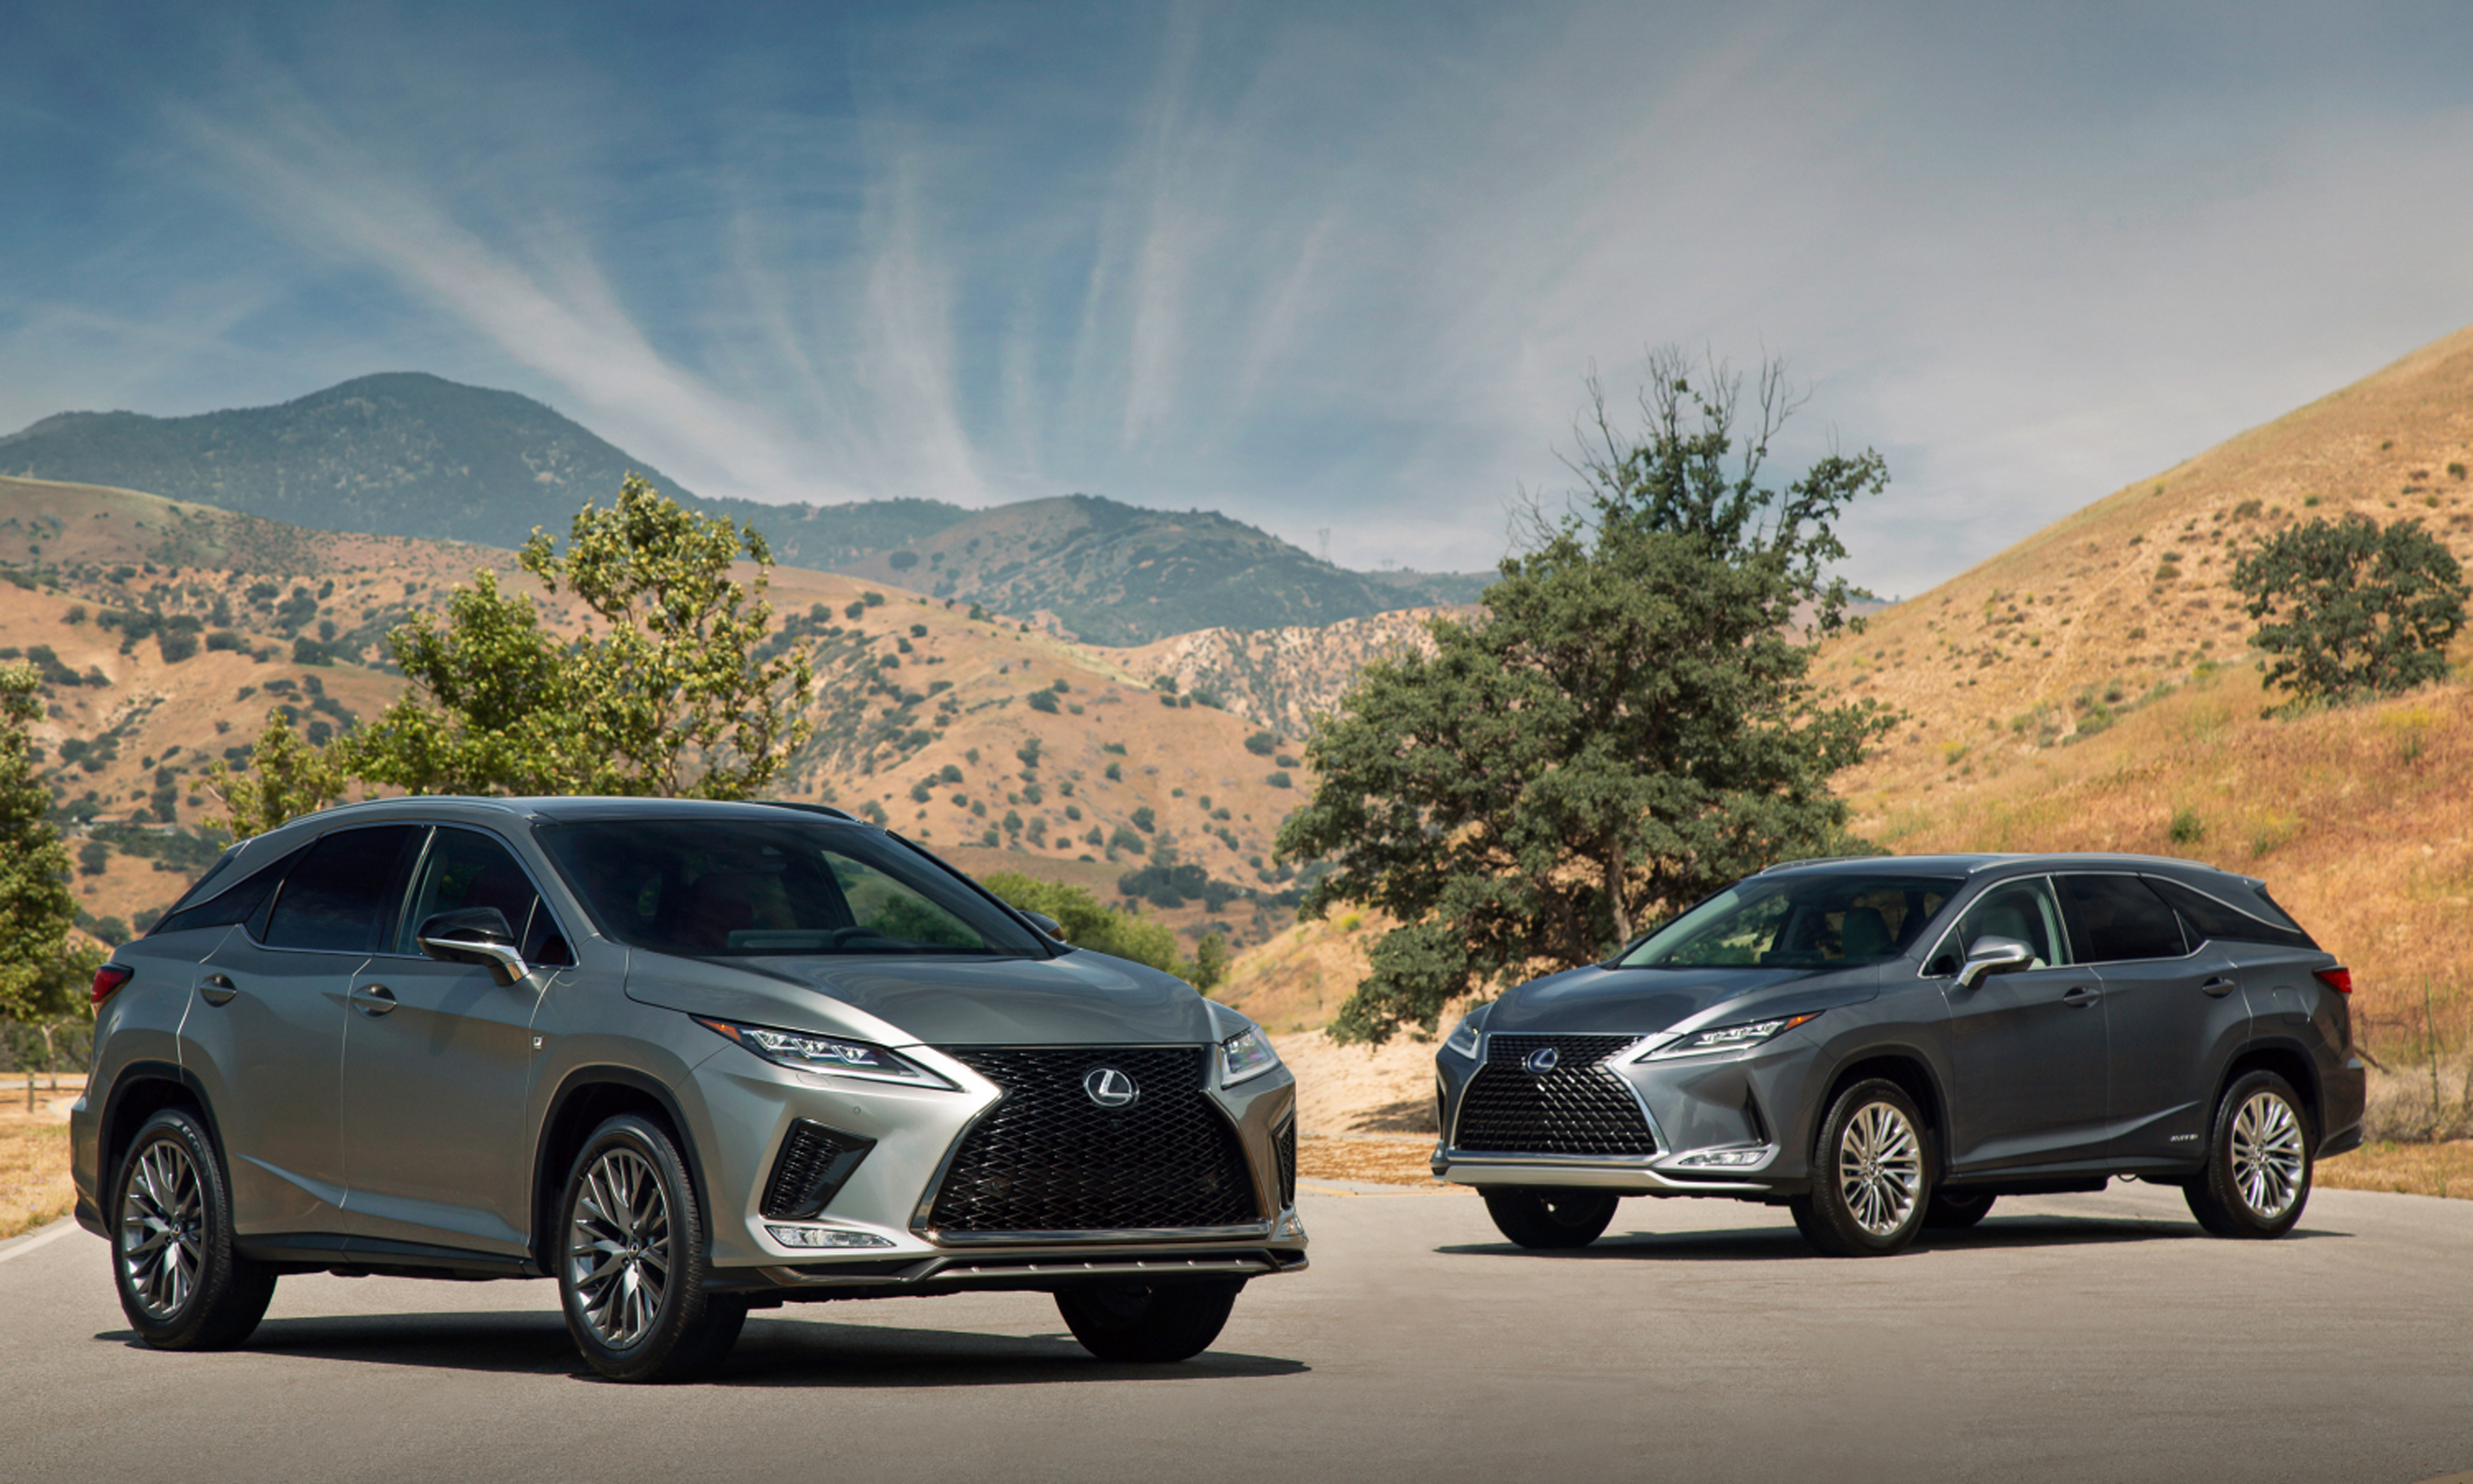 2020 Lexus Rx And Rxl Open A New Chapter For The Iconic Luxury Crossover Lexus Usa Newsroom